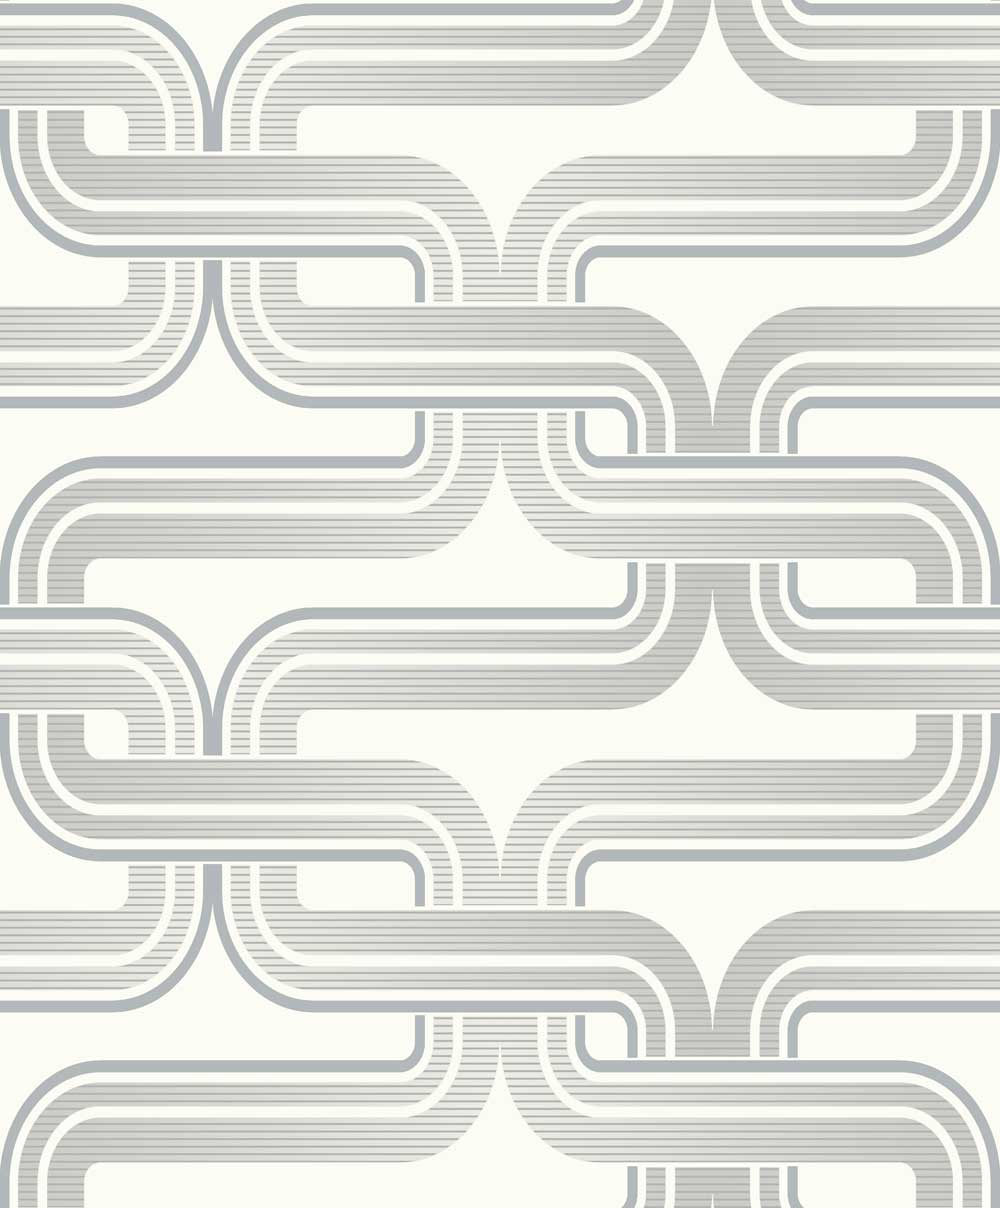 White Wallpaper With Design Link By Silver White Wallpaper - Retro Geometric Lines Pattern - HD Wallpaper